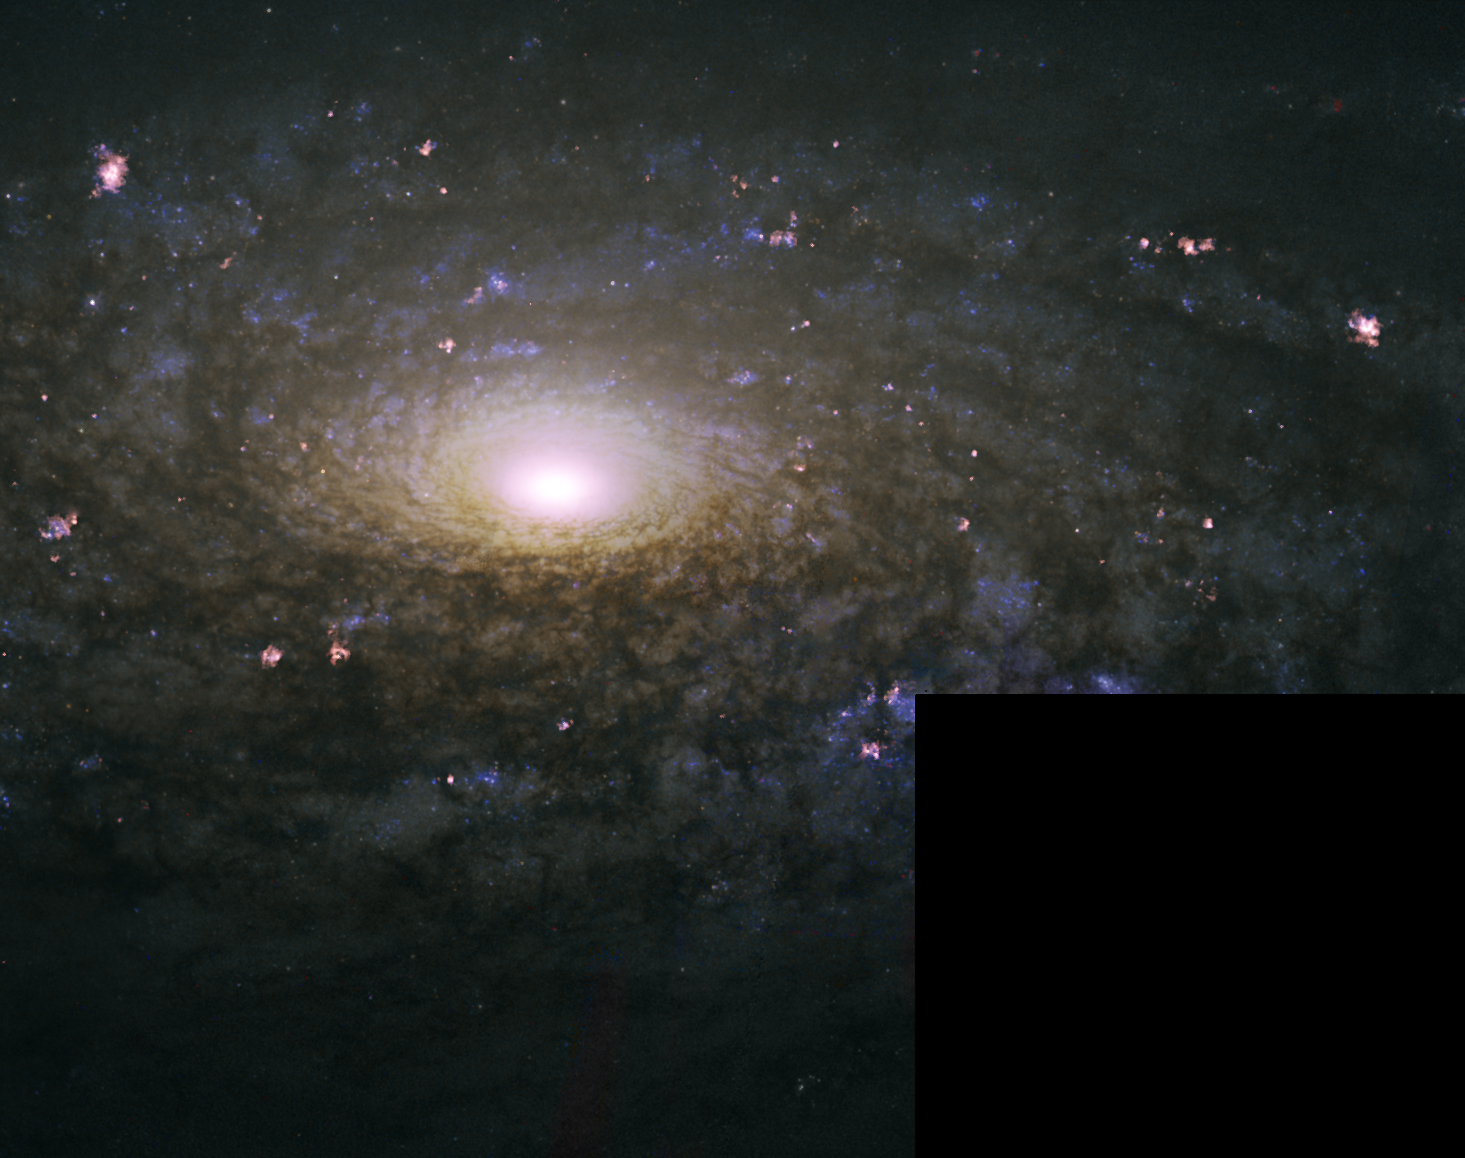 Hubble image of NGC3521 - my processing